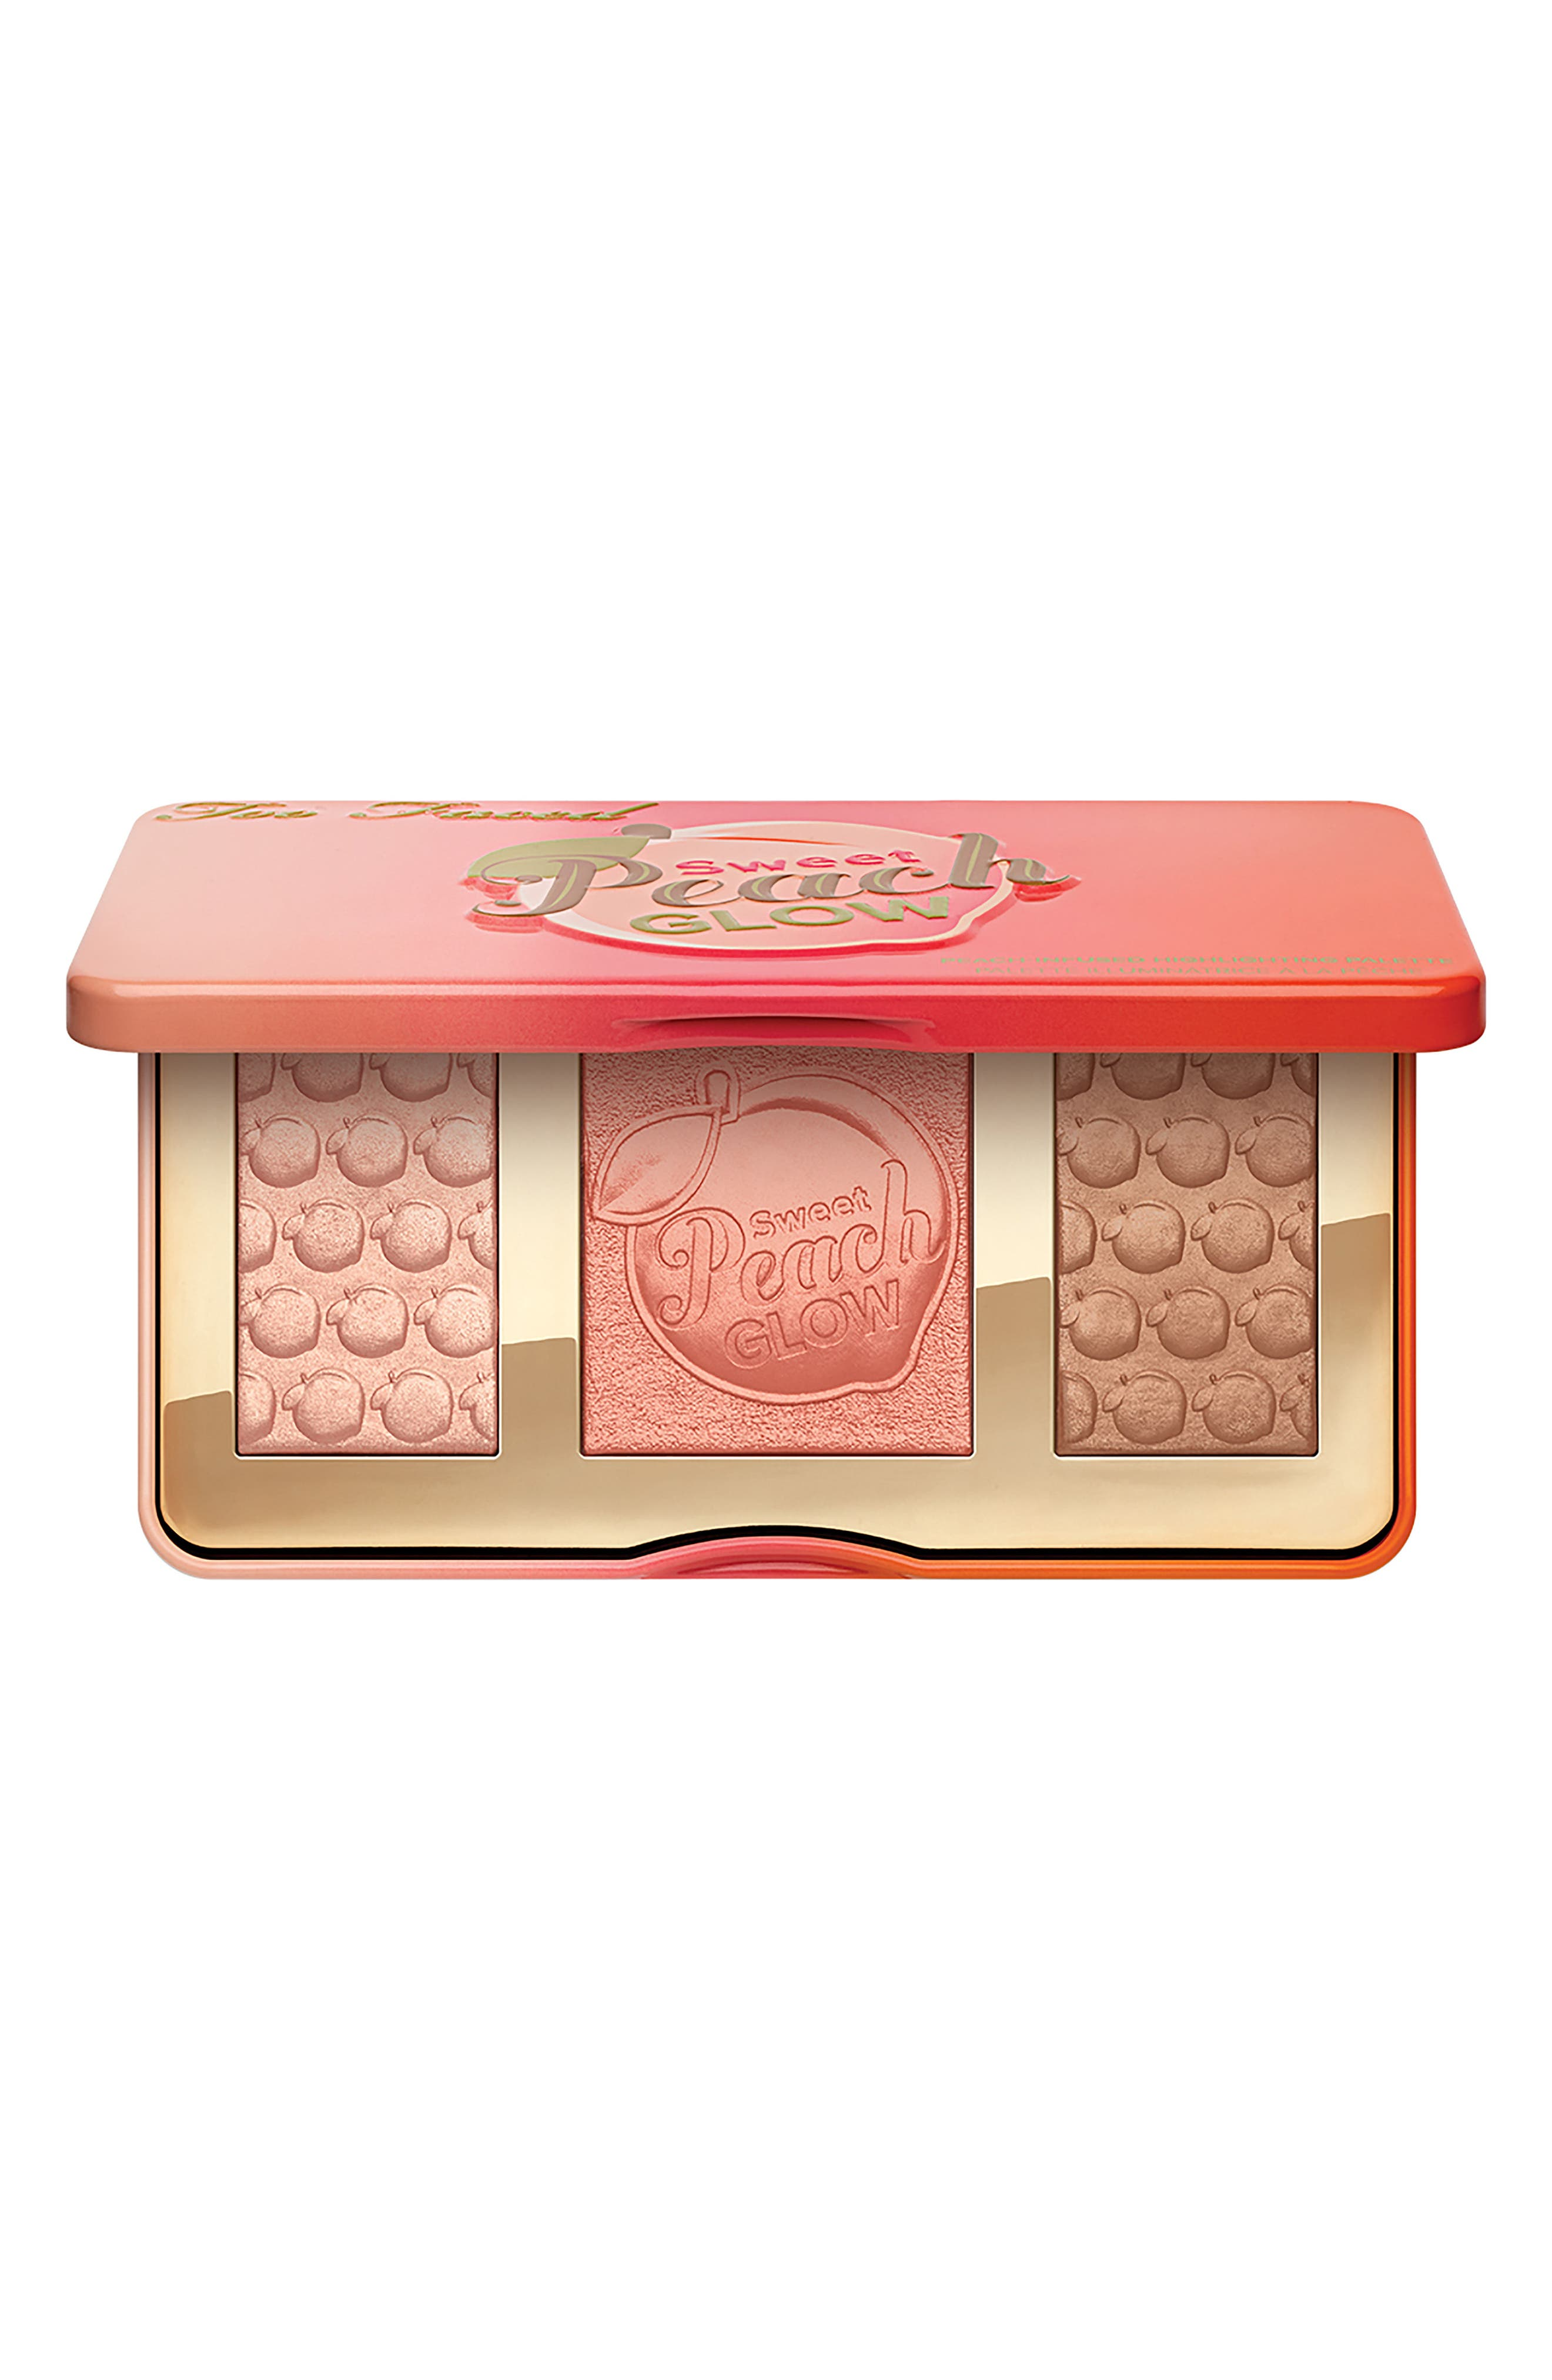 Sweet Peach Glow Highlighting Palette,                             Main thumbnail 1, color,                             No Color